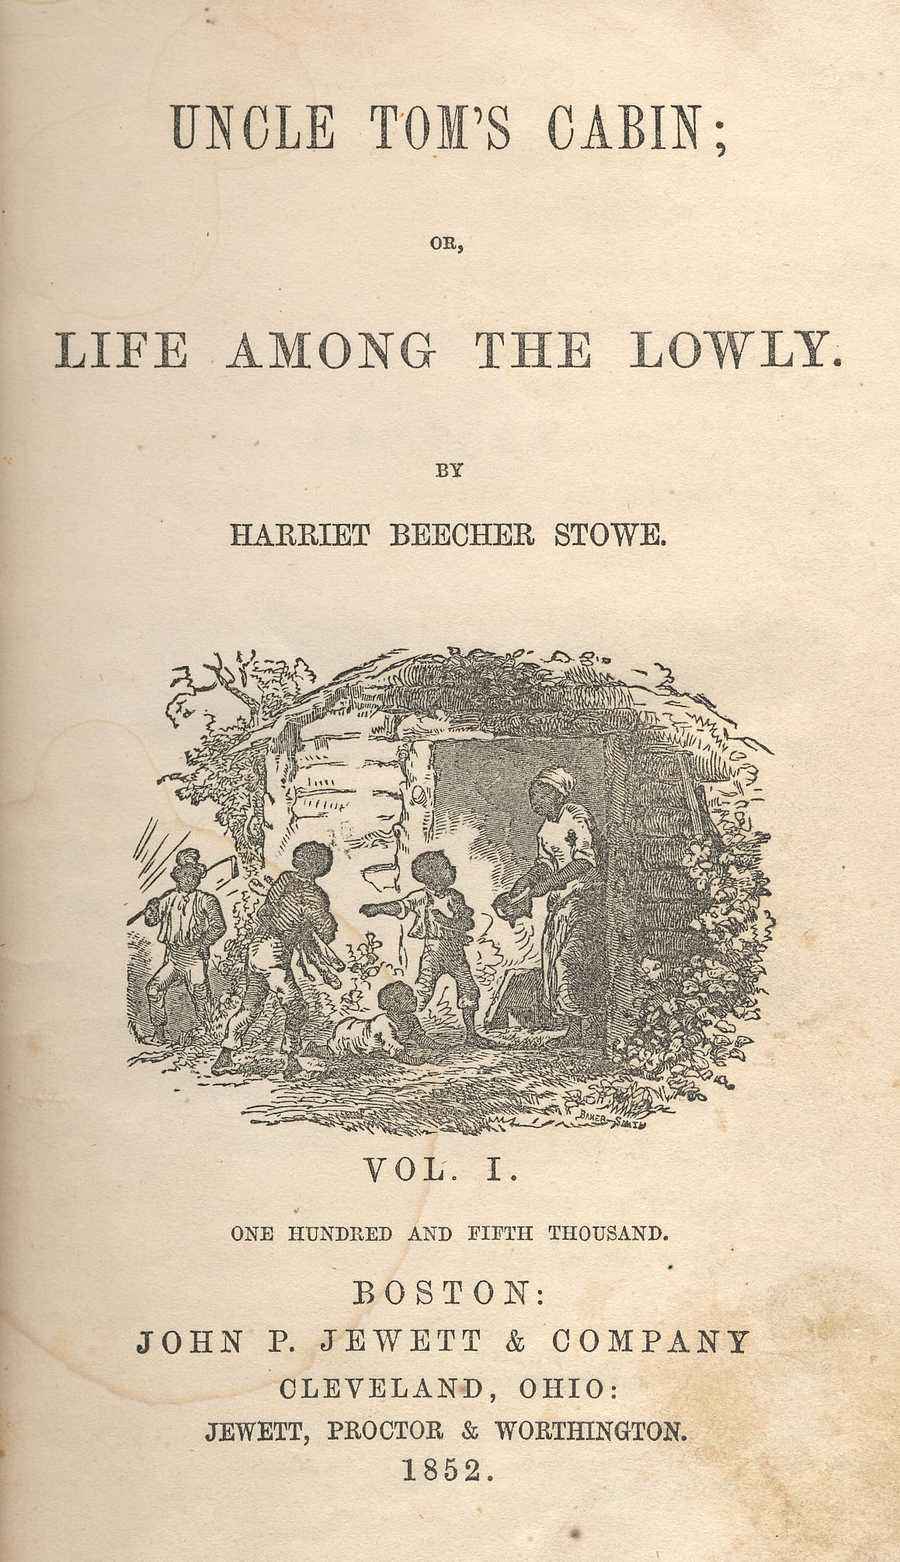 Uncle Tom's Cabin, Harriet Beecher Stowe, 1852 In the South, in the context of the current times, the book was met with outrage and branded an irresponsible book of distortions and overstatements.